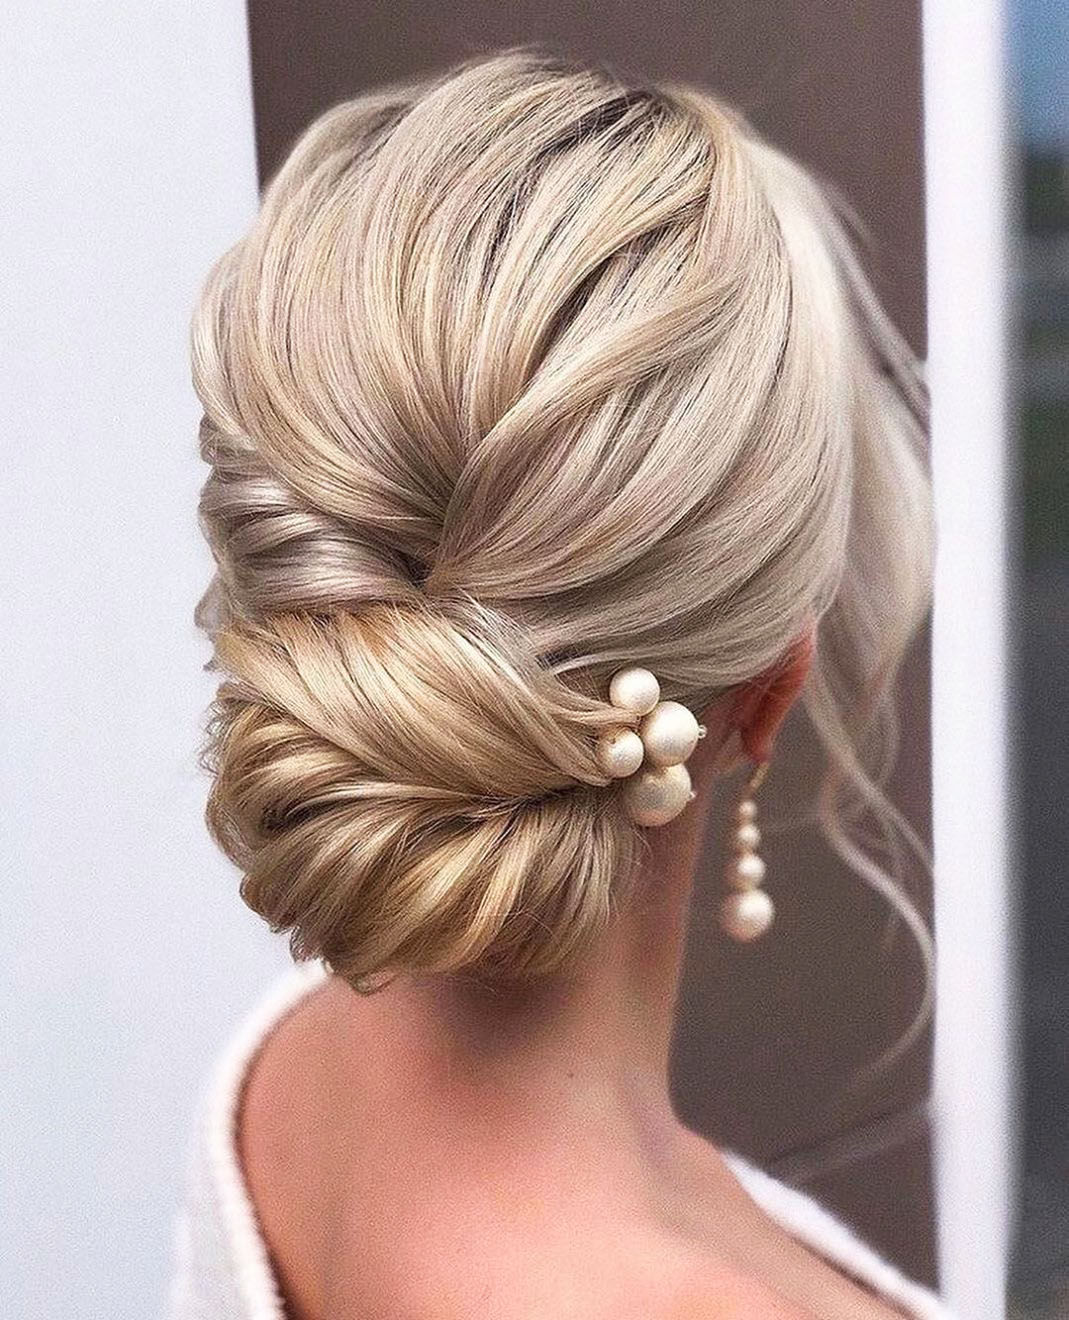 Hairstyles Winter 2020 ideas from hair stylists 10 16